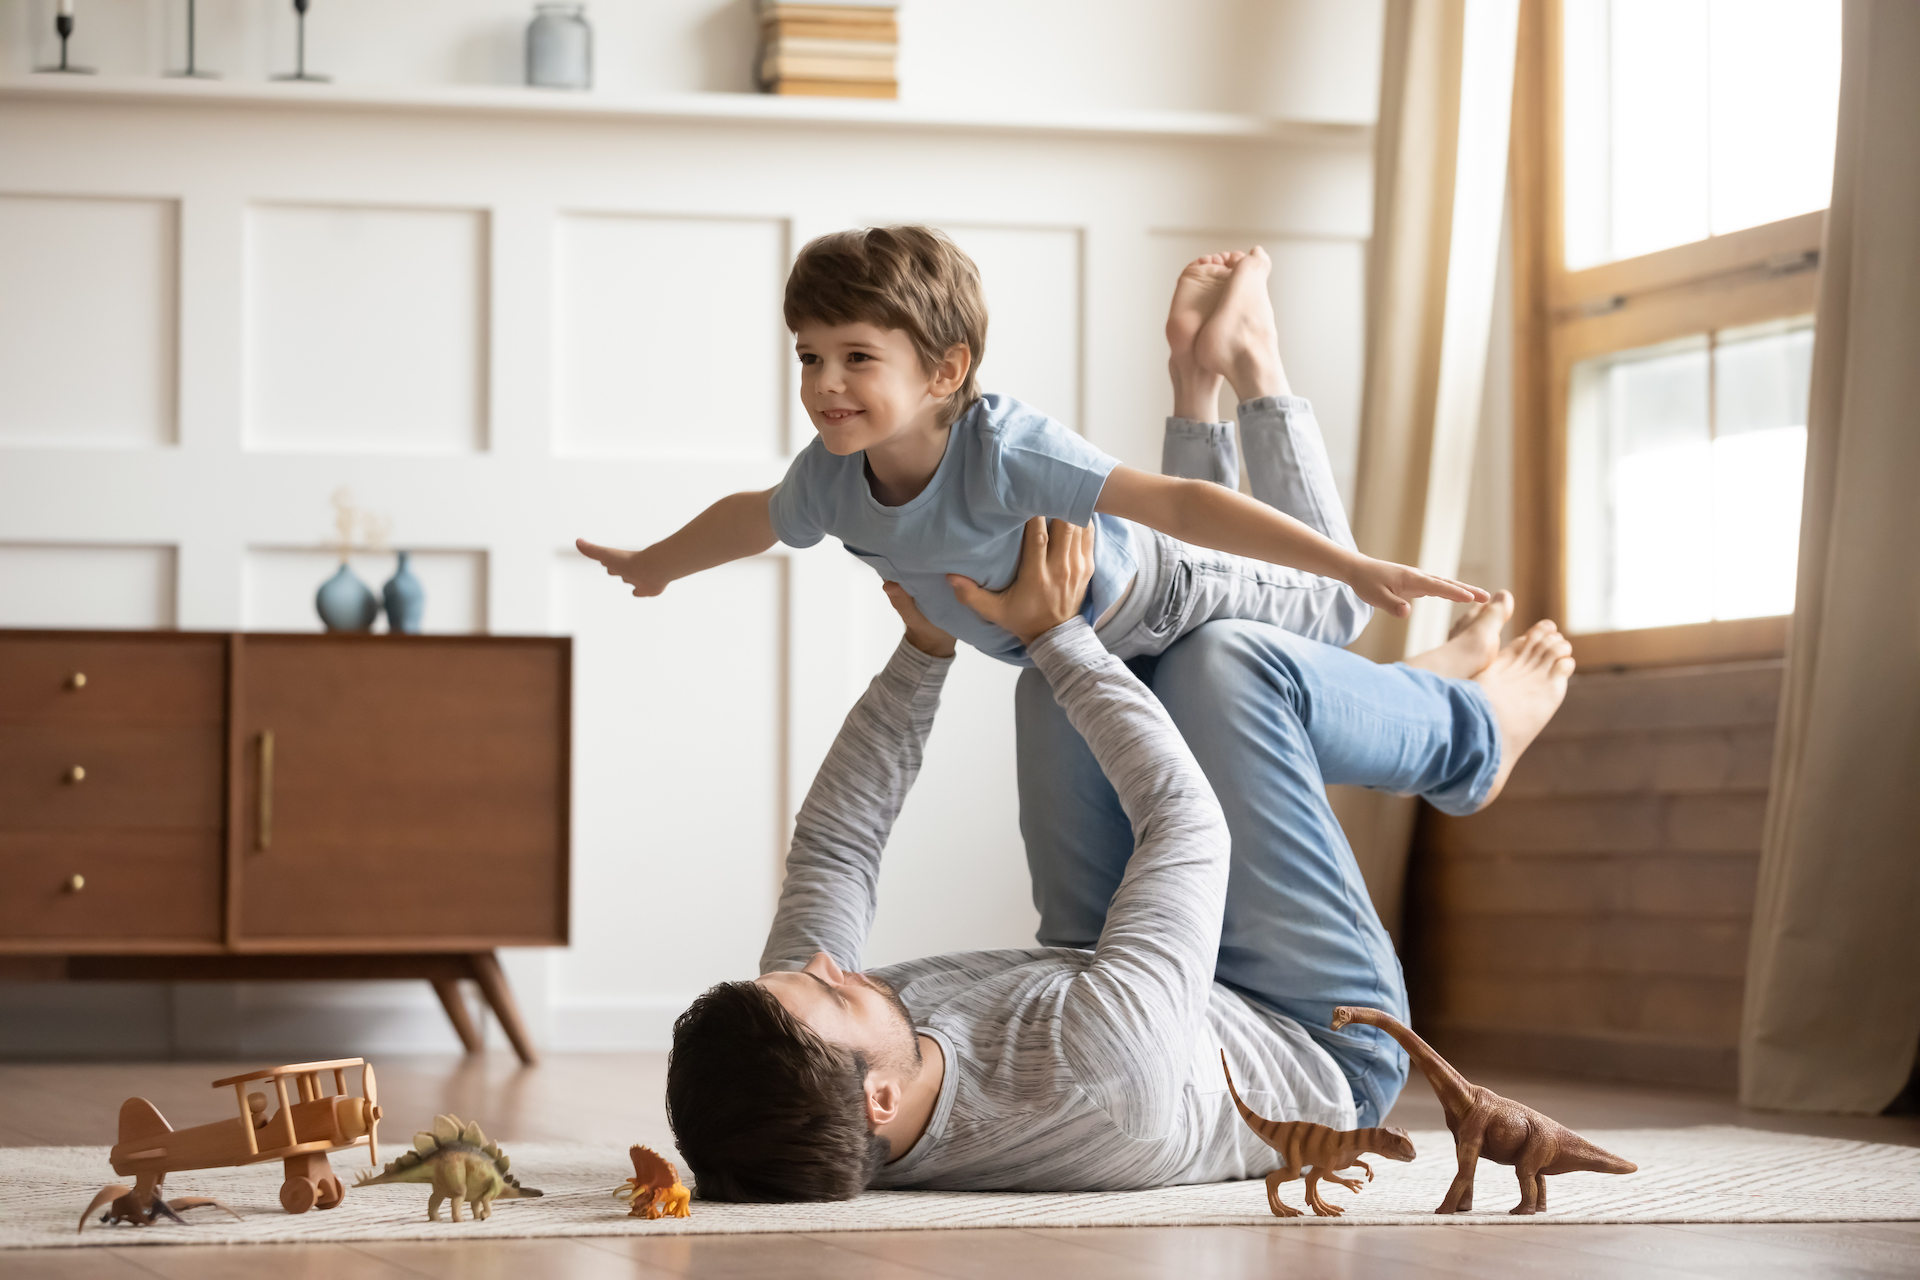 A father lying on the floor of a living room lifting up his young son as they play together.